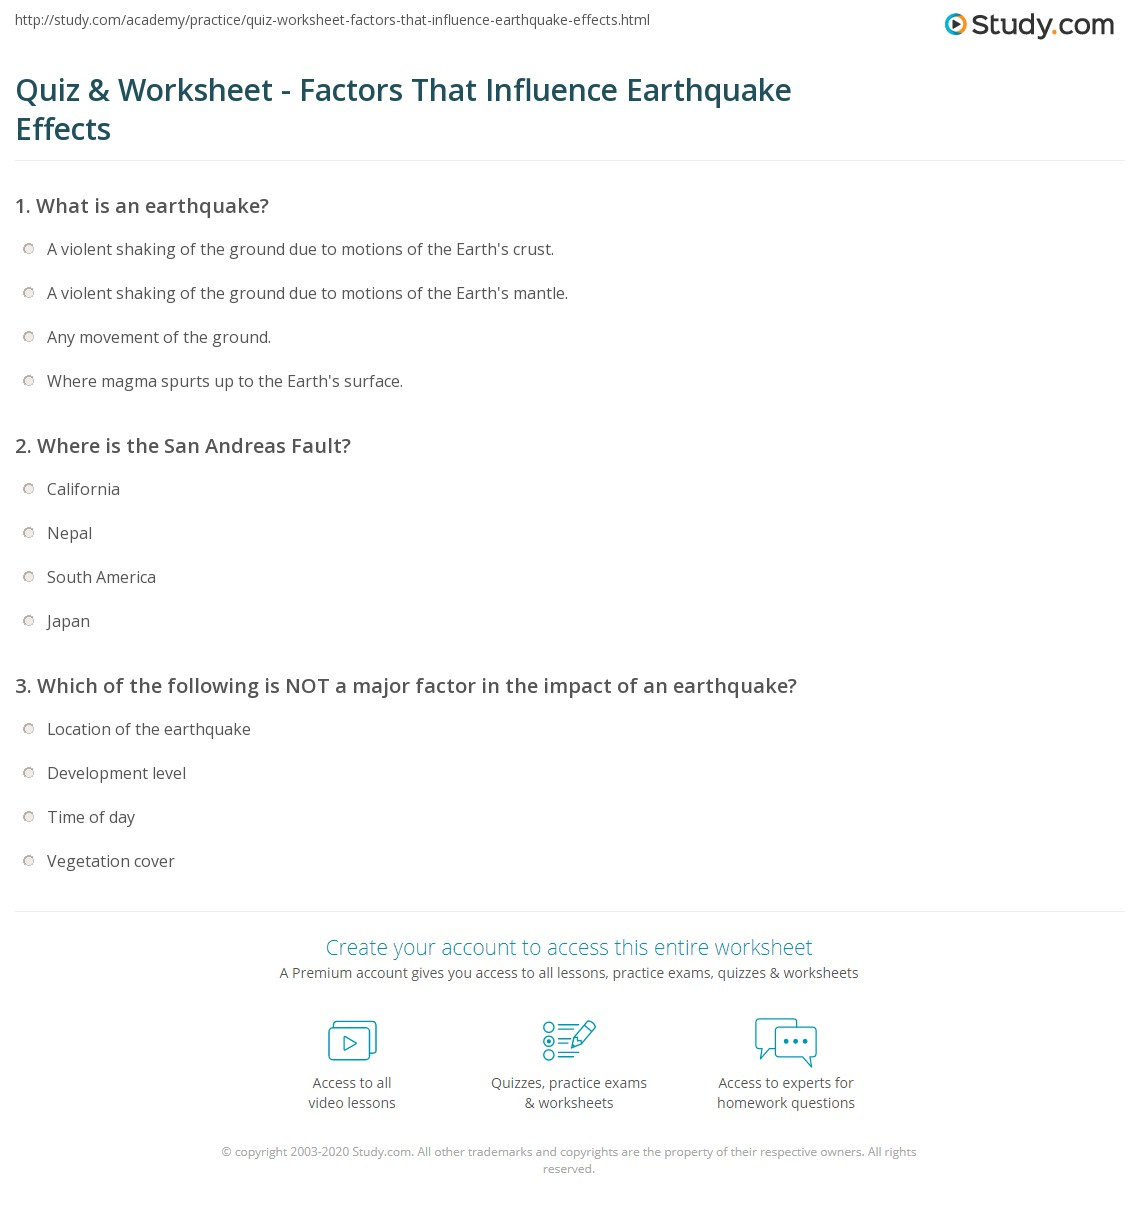 Worksheets Earthquake Worksheets quiz worksheet factors that influence earthquake effects print determine the impact of an worksheet